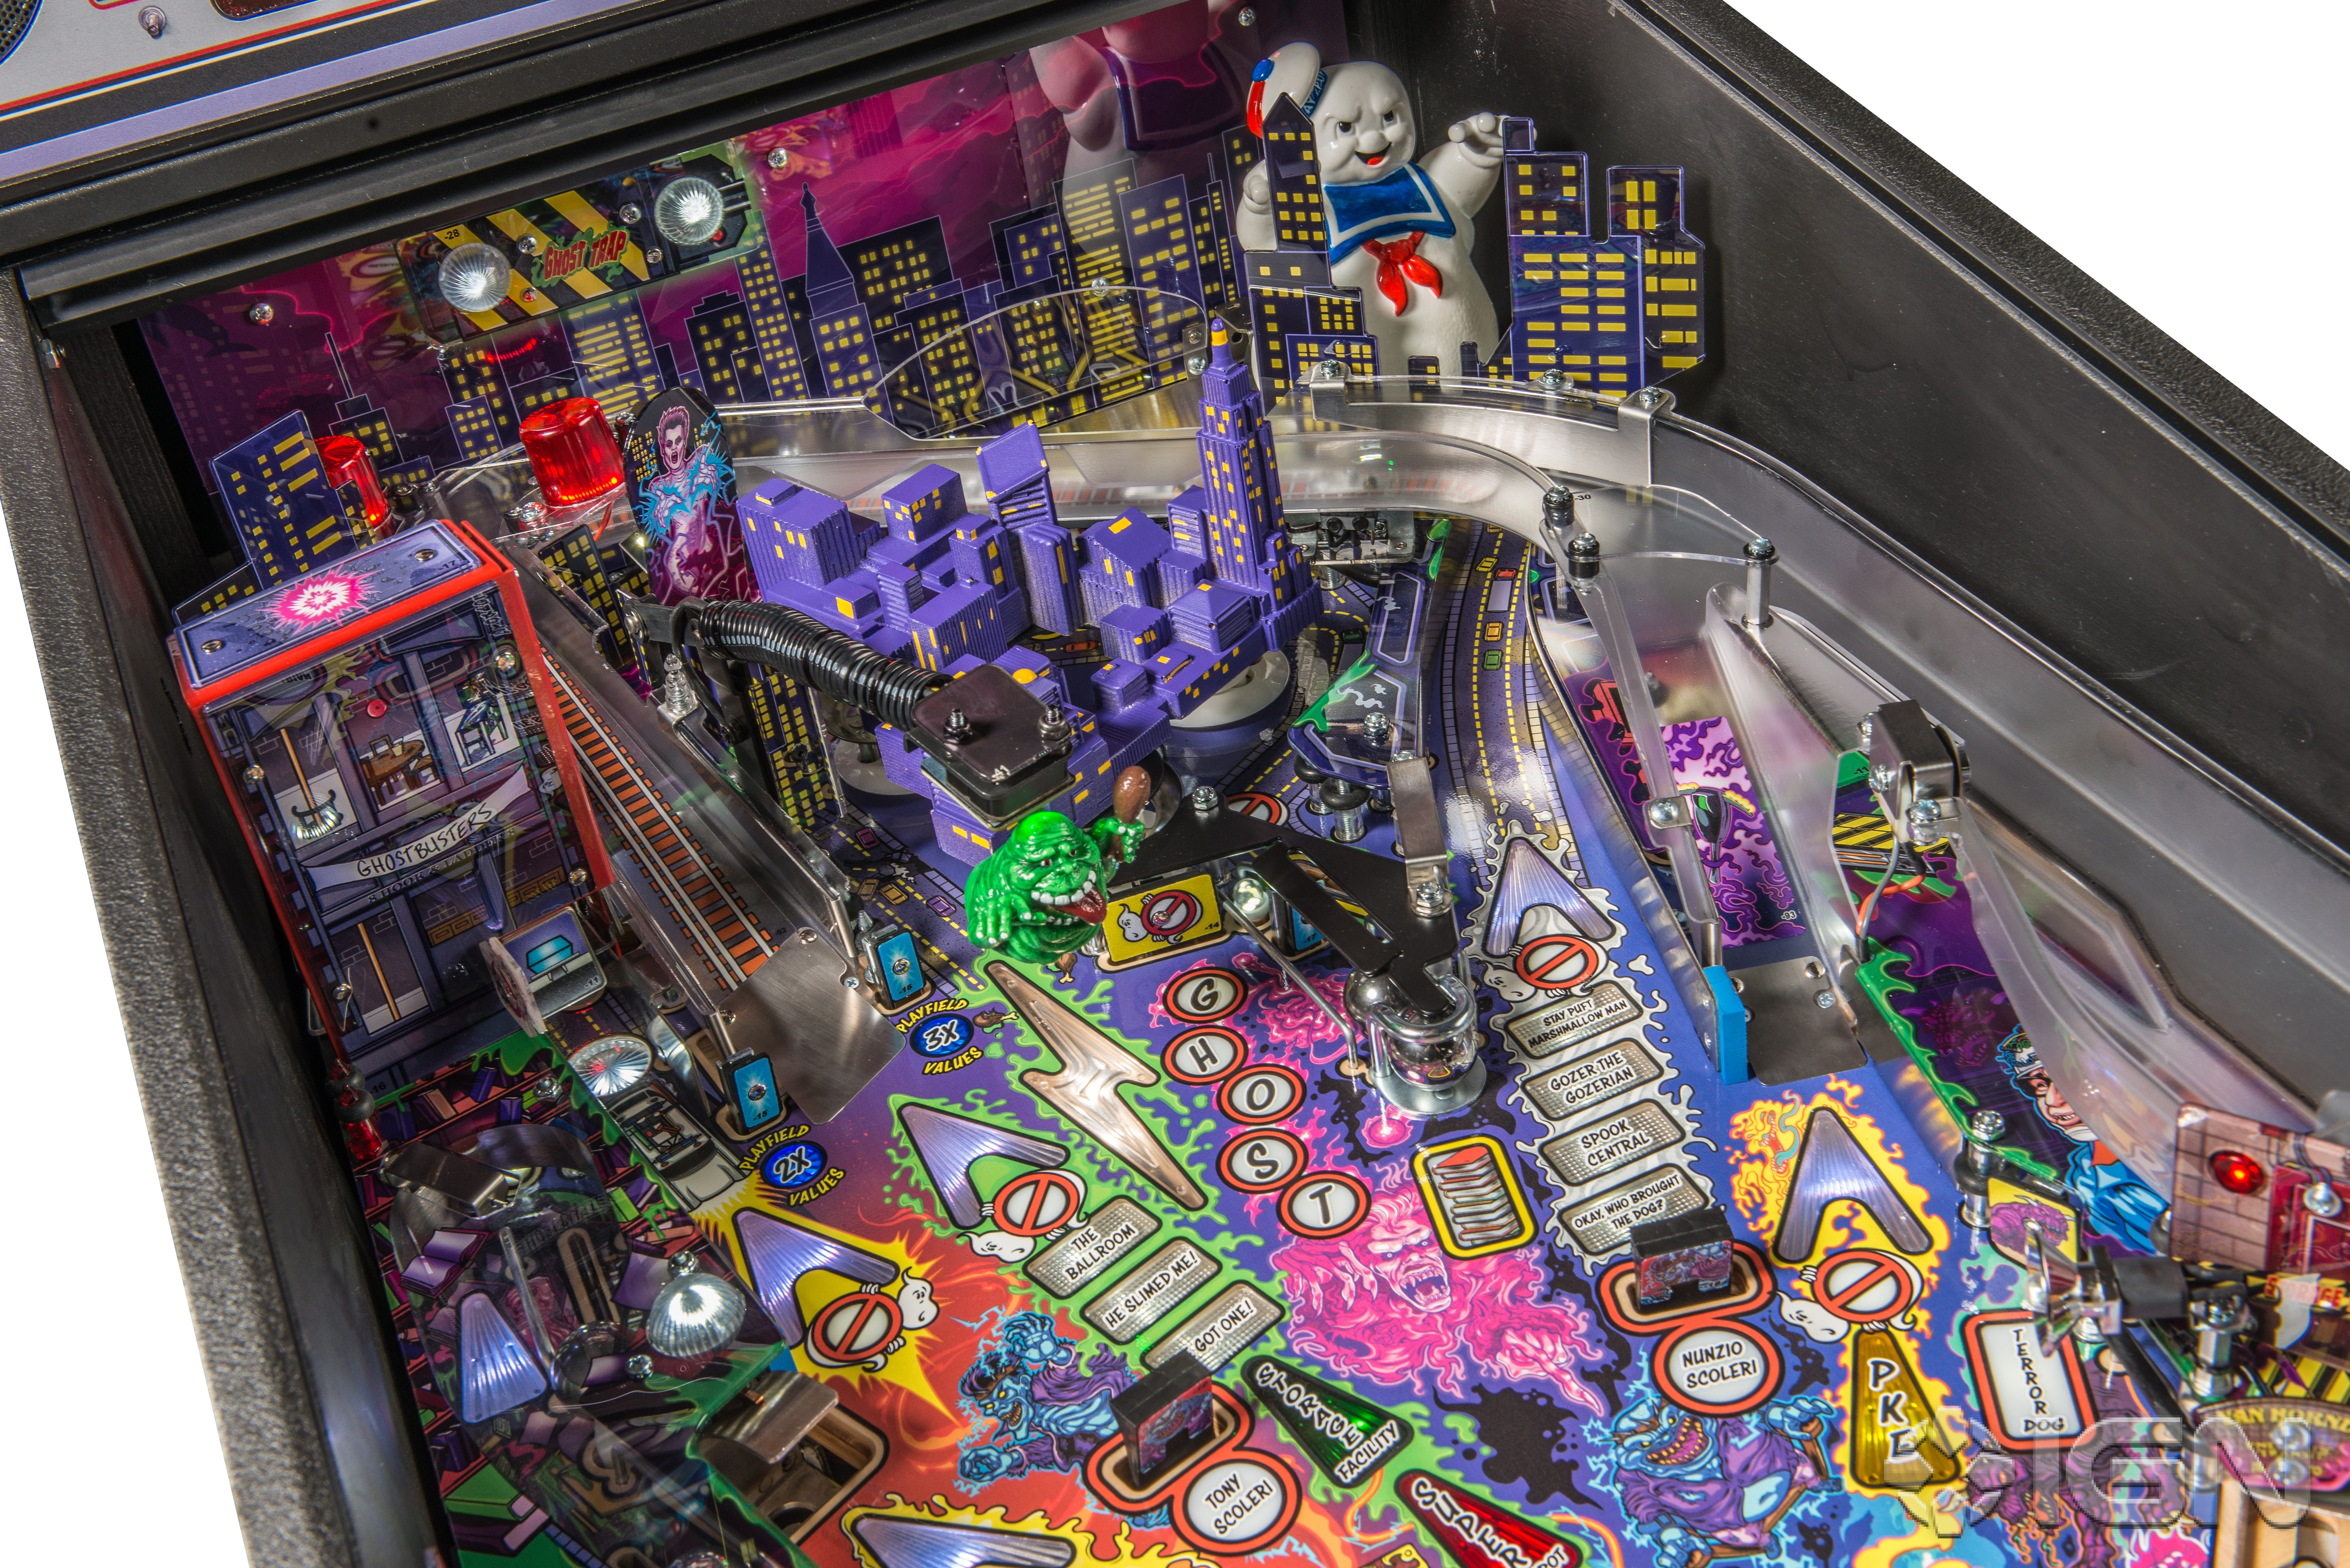 Ghostbusters by Stern Pinball